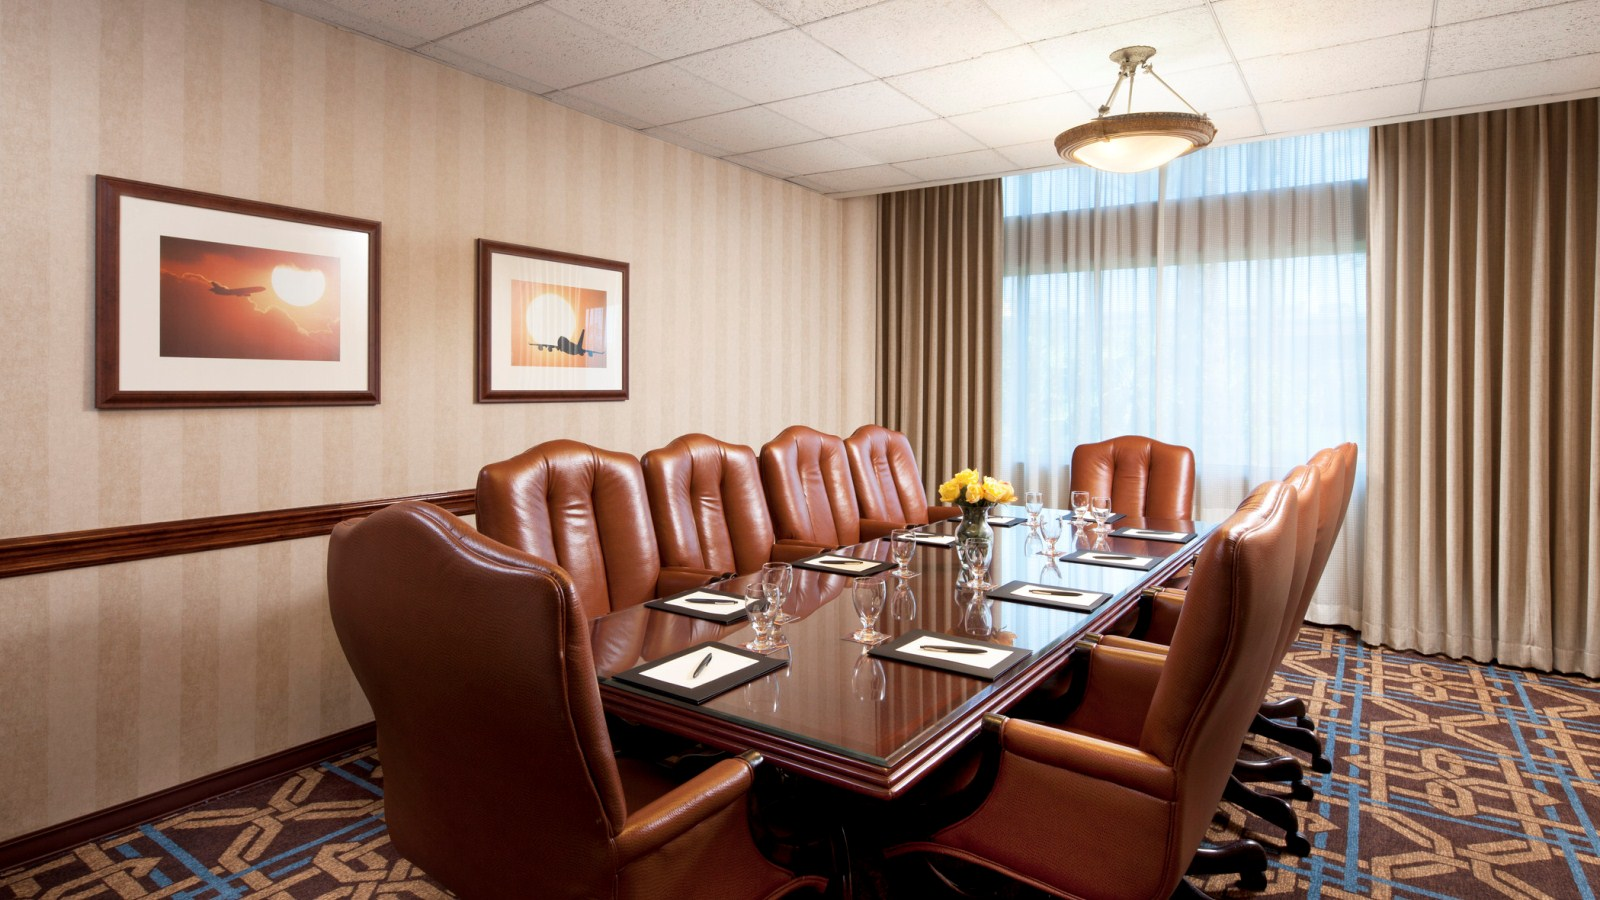 Ontario Meetings - Boardroom